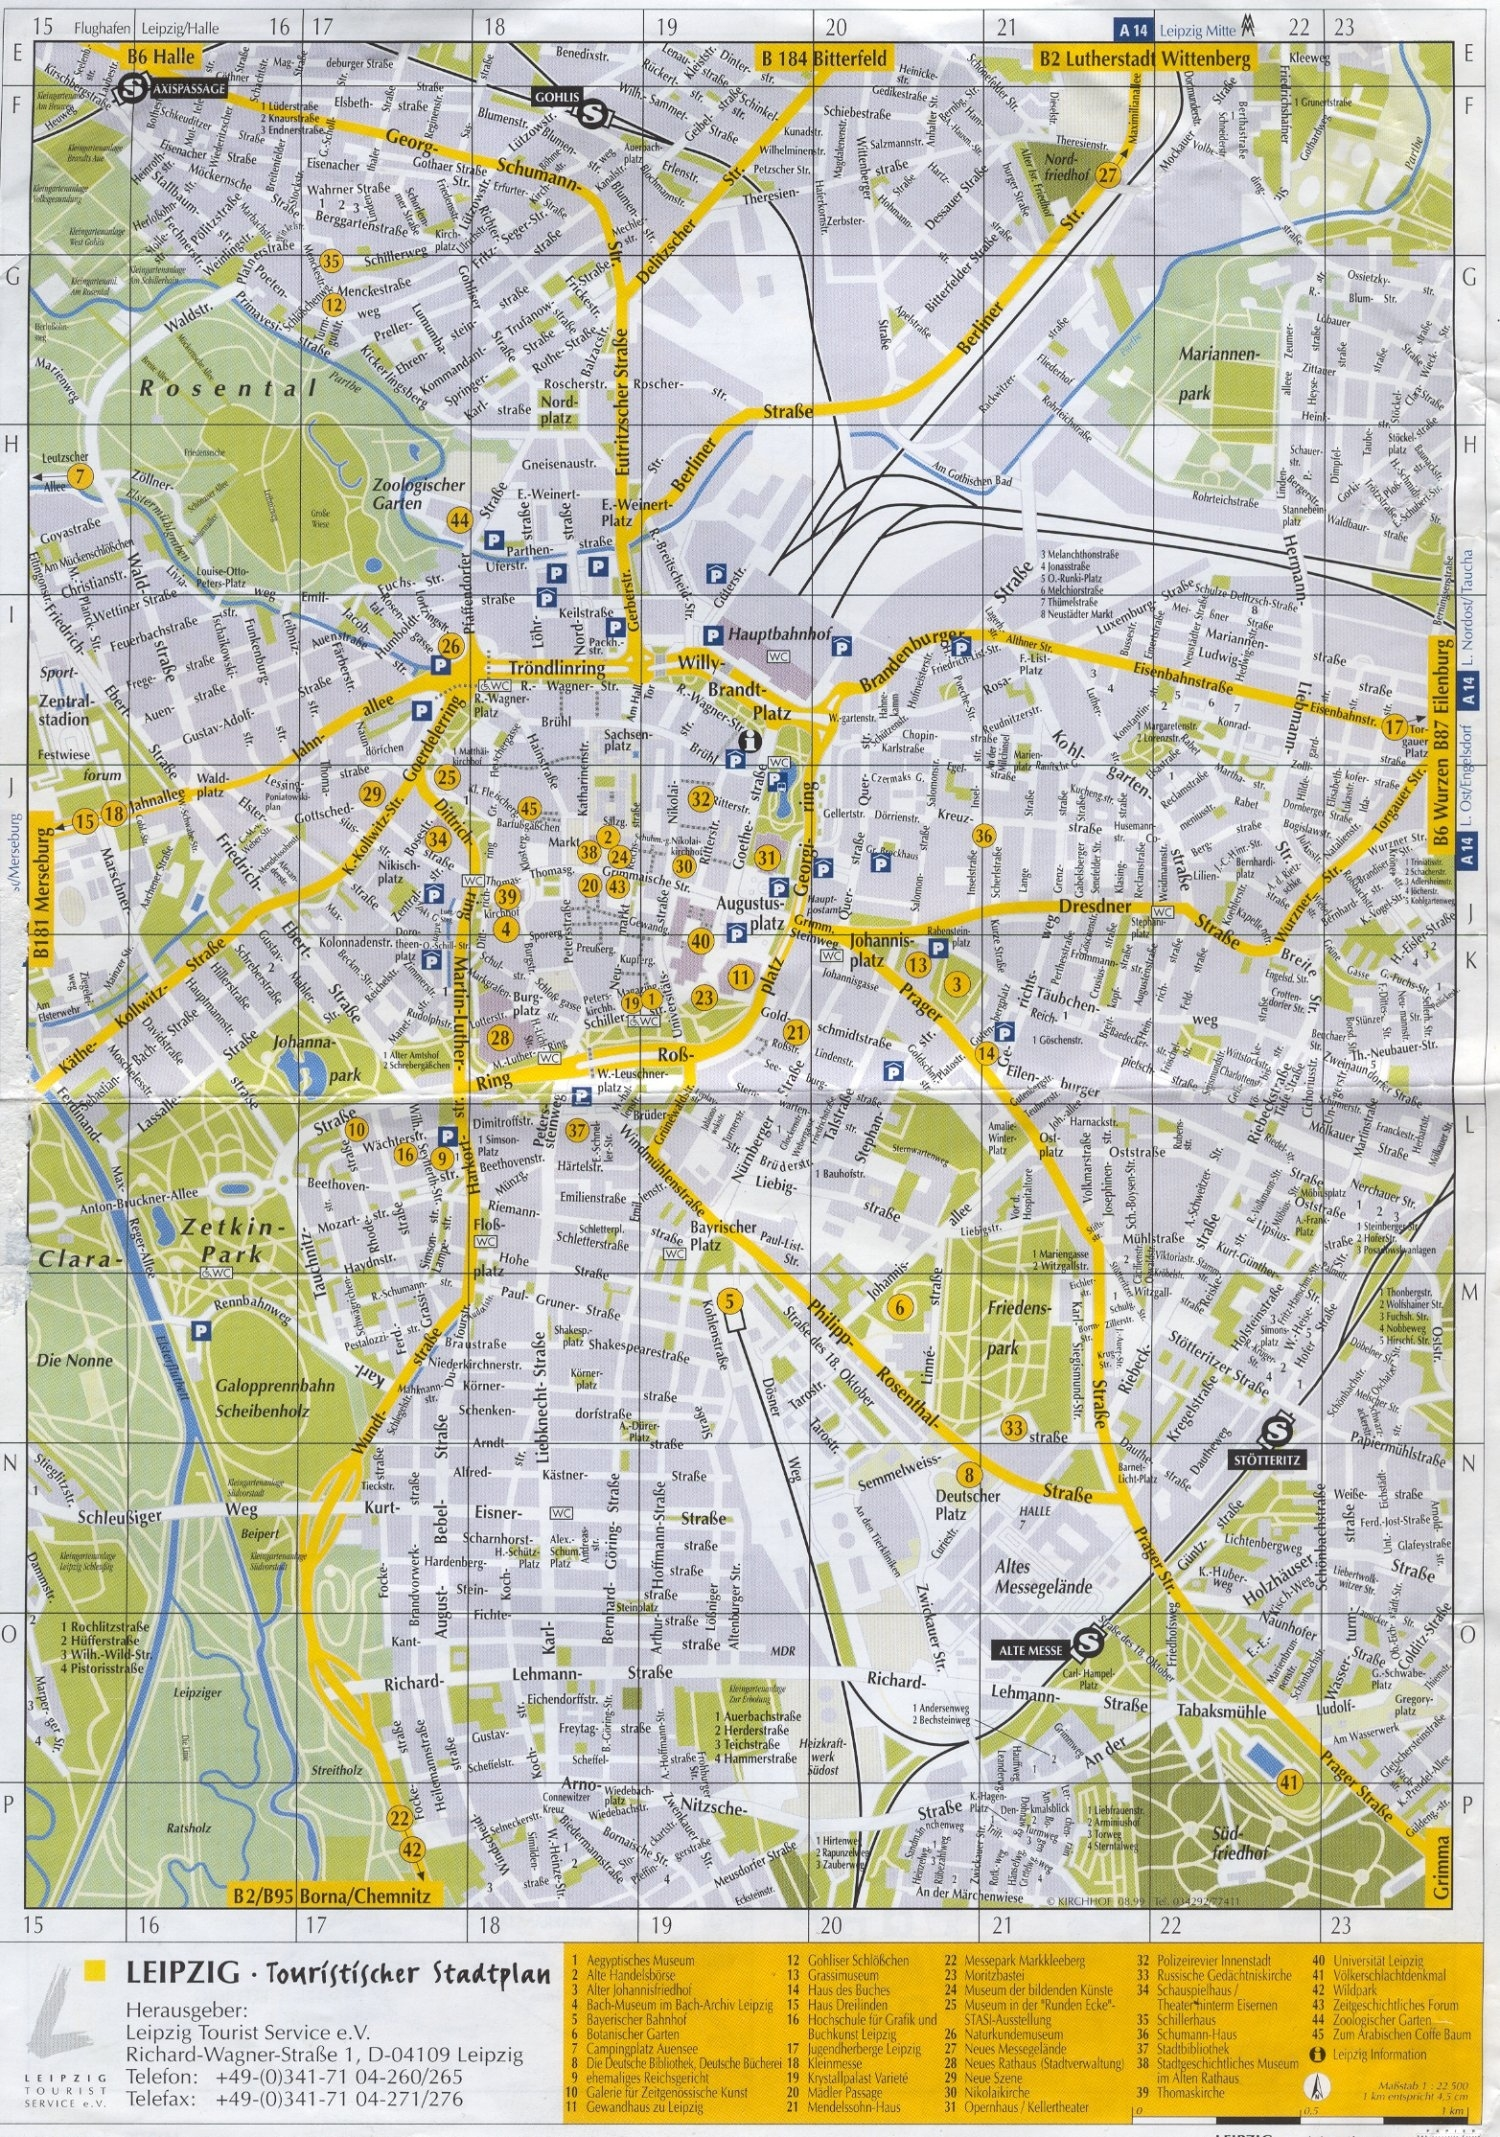 Guide To Bach Tour: Leipzig - Maps intended for Google Maps Traffic Stuttgart Germany